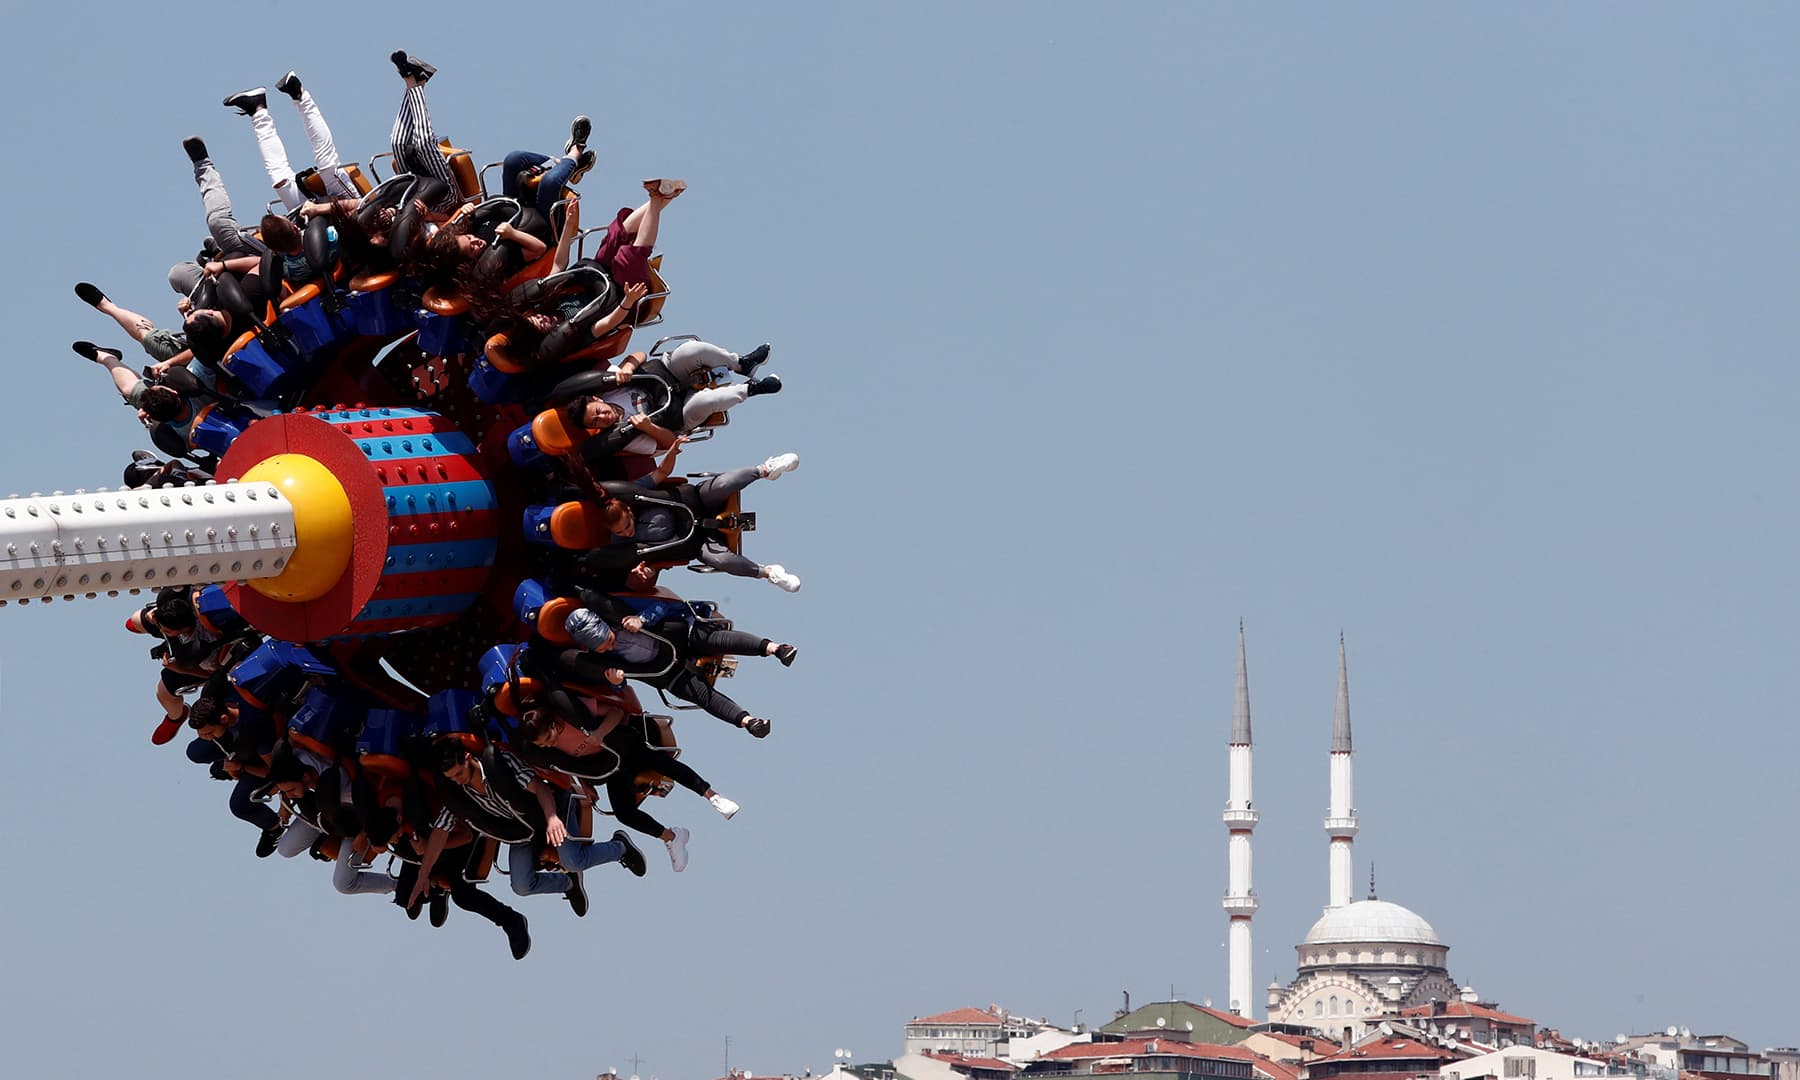 People enjoy a ride in an amusement park as they celebrate the second day of Eidul Fitr in Istanbul, Turkey on June 5. — Reuters